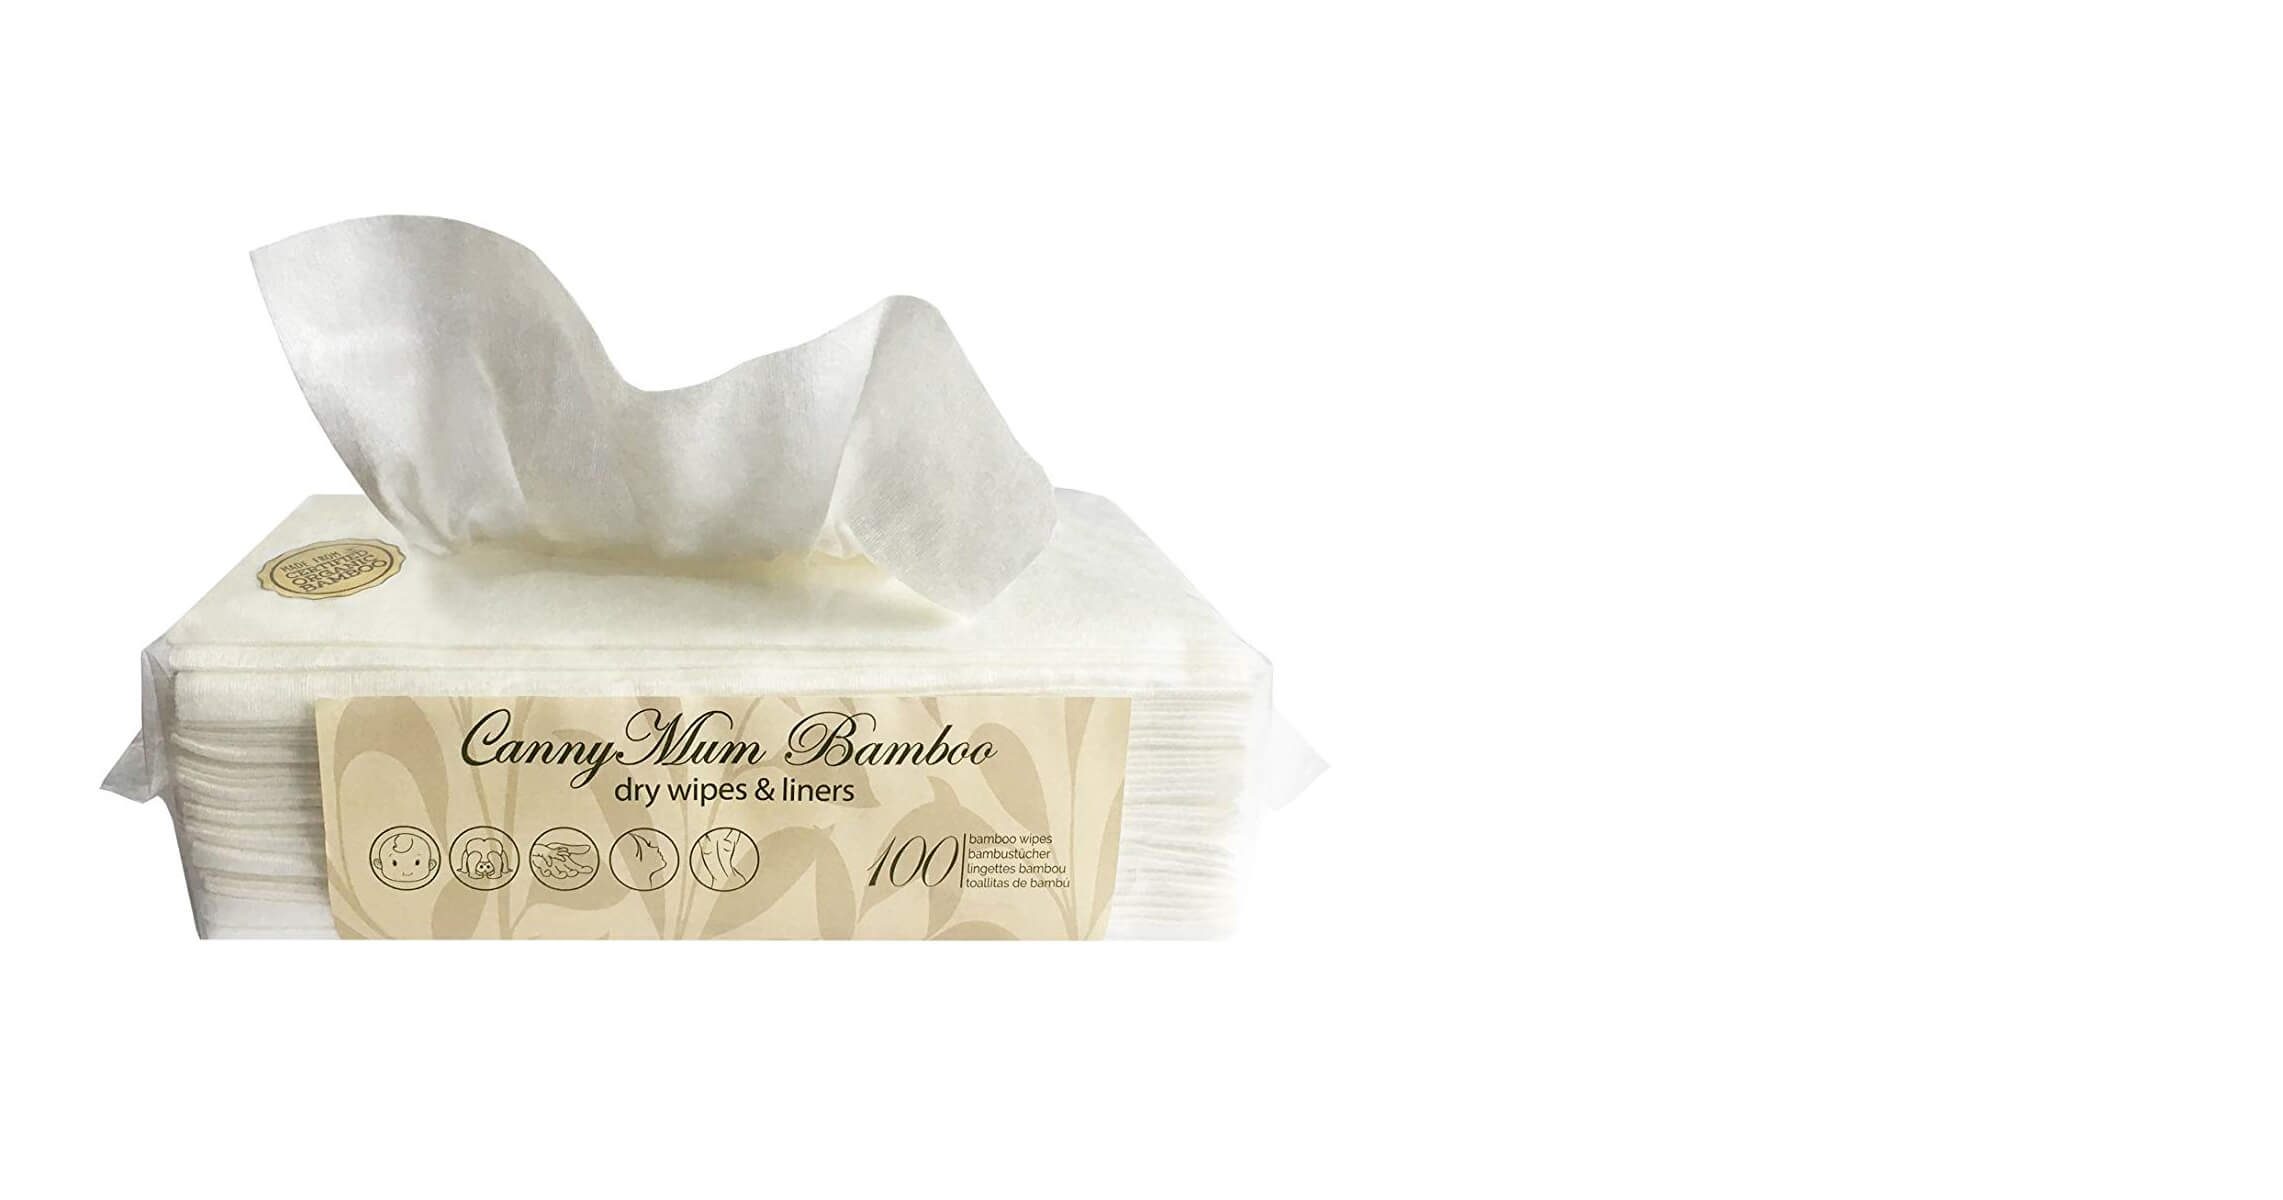 Biodegradable & Chemical-free Dry Baby Wipes